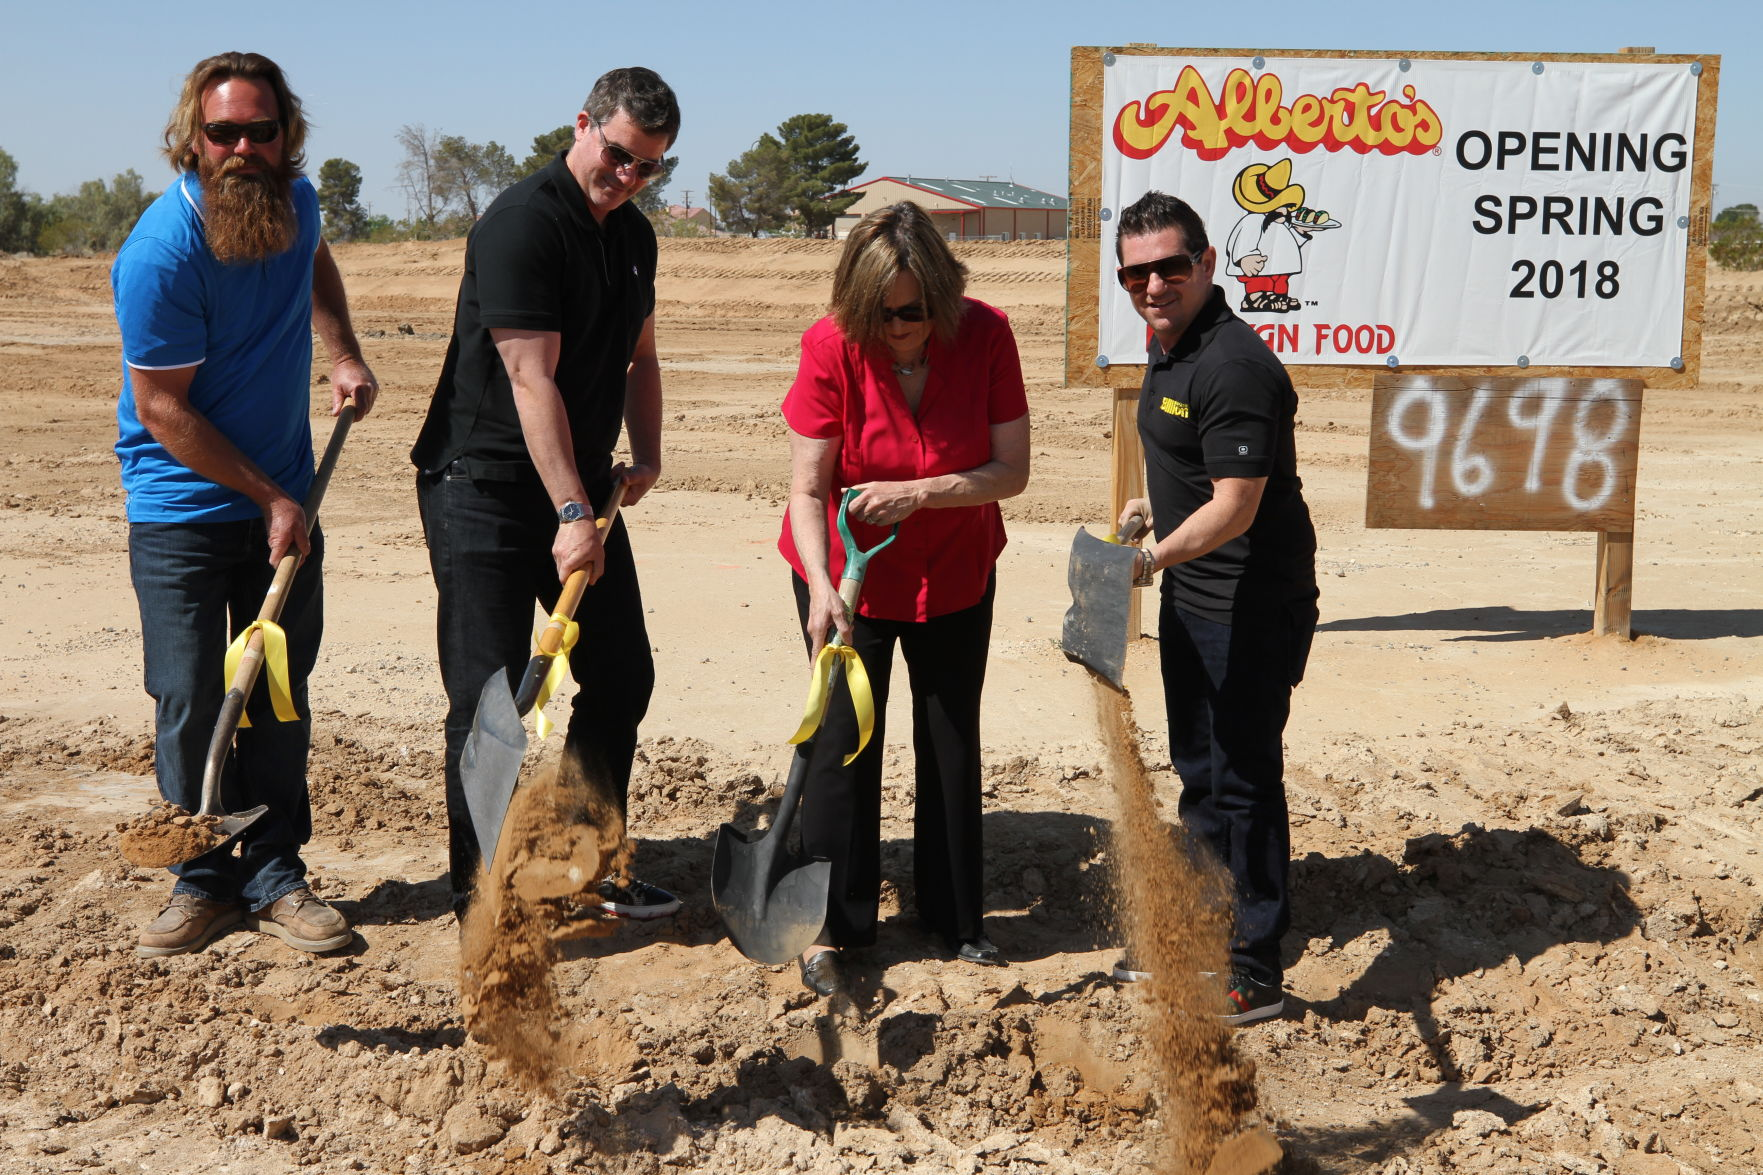 Albertos finally breaks ground after two-year wait